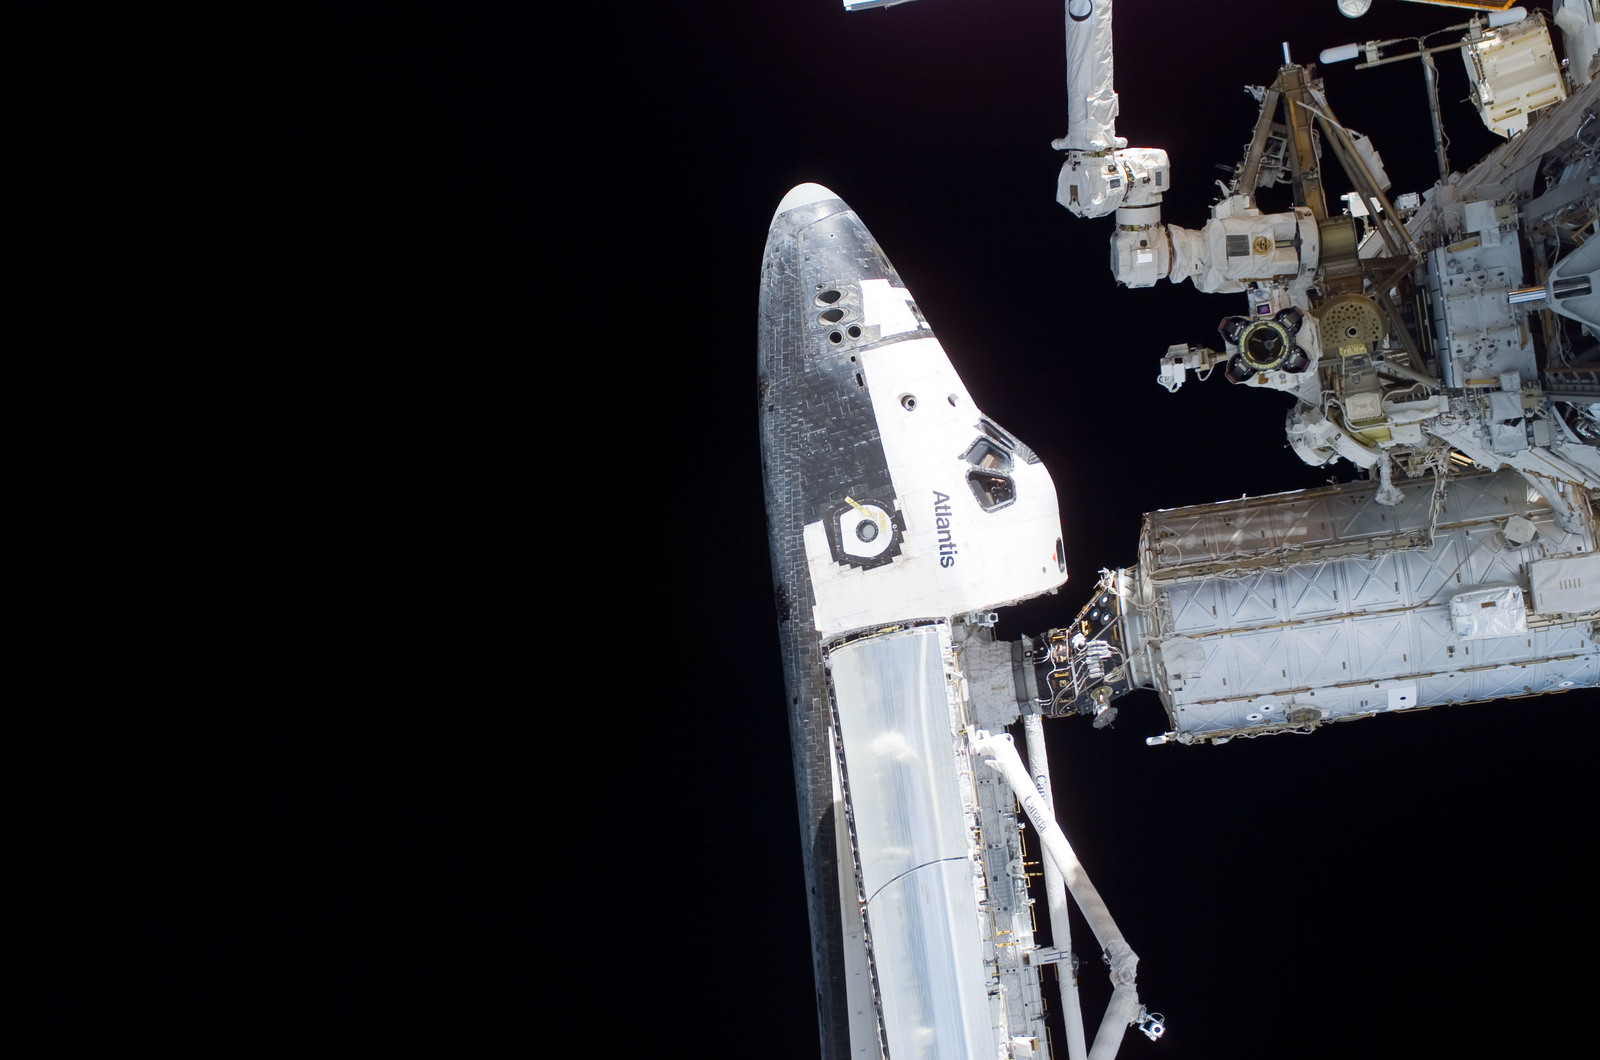 S115E05690 - STS-115 - STS-115 Space Shuttle Atlantis docked on the ISS during Joint Operations